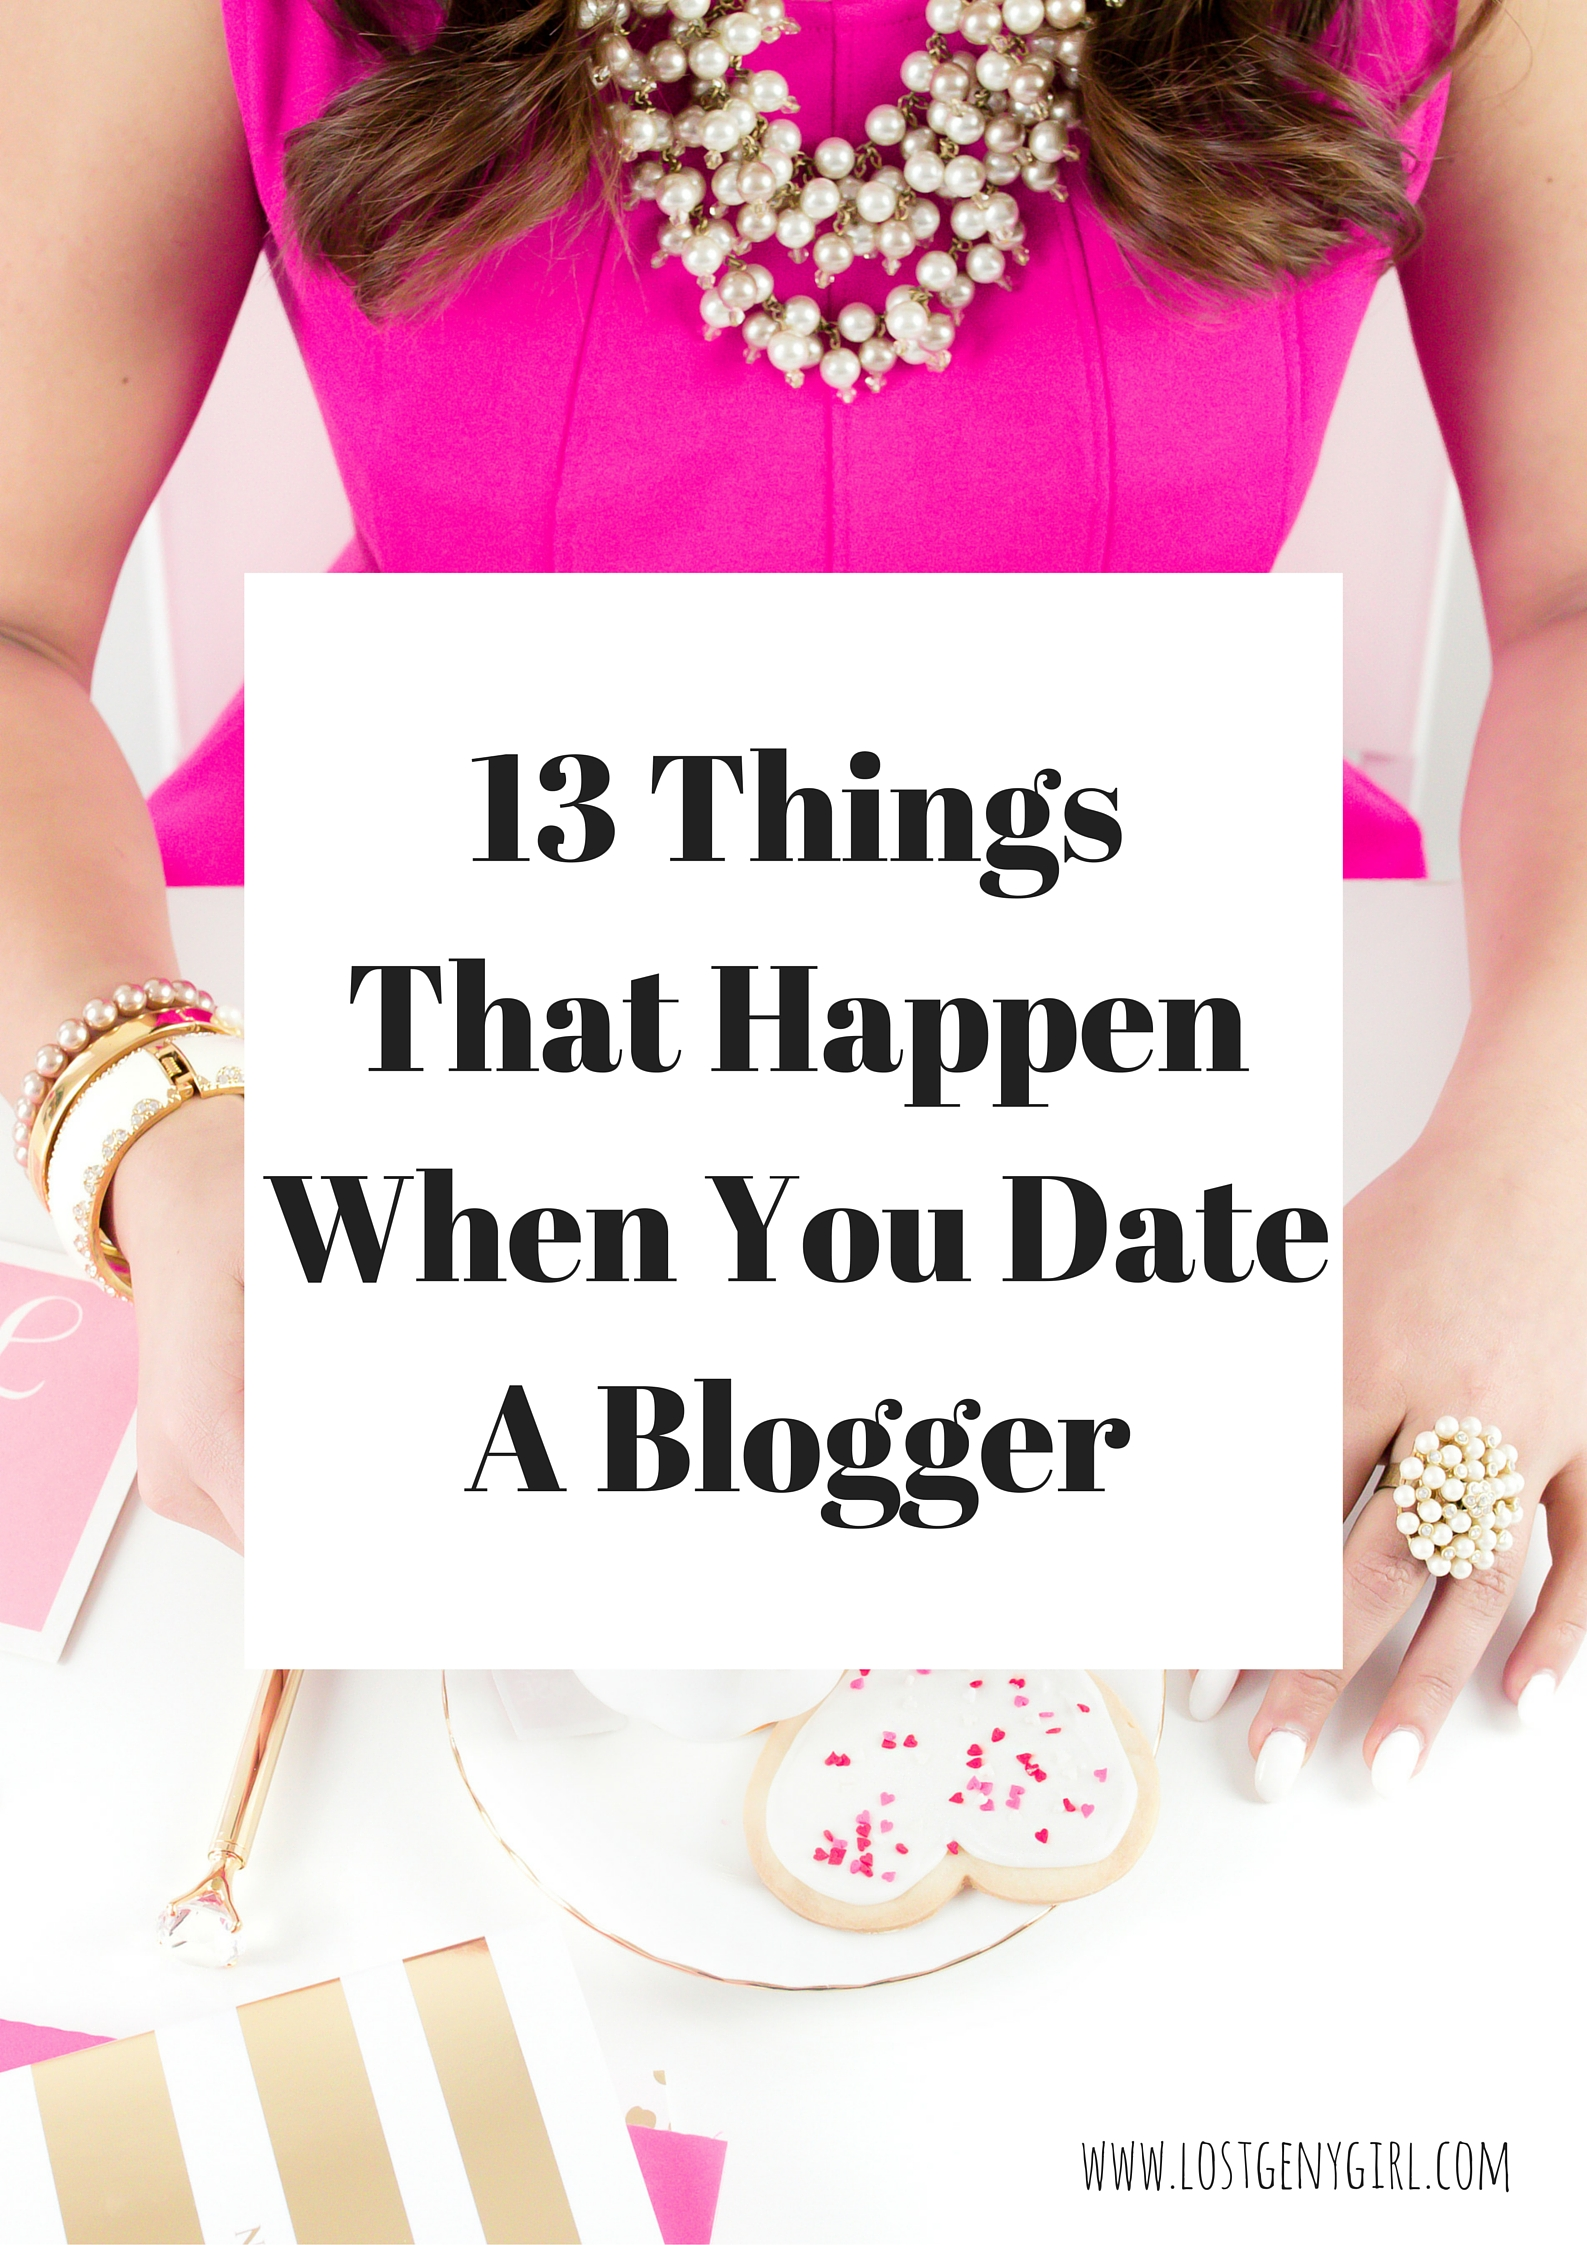 13 Things That Happen When You Date A Blogger